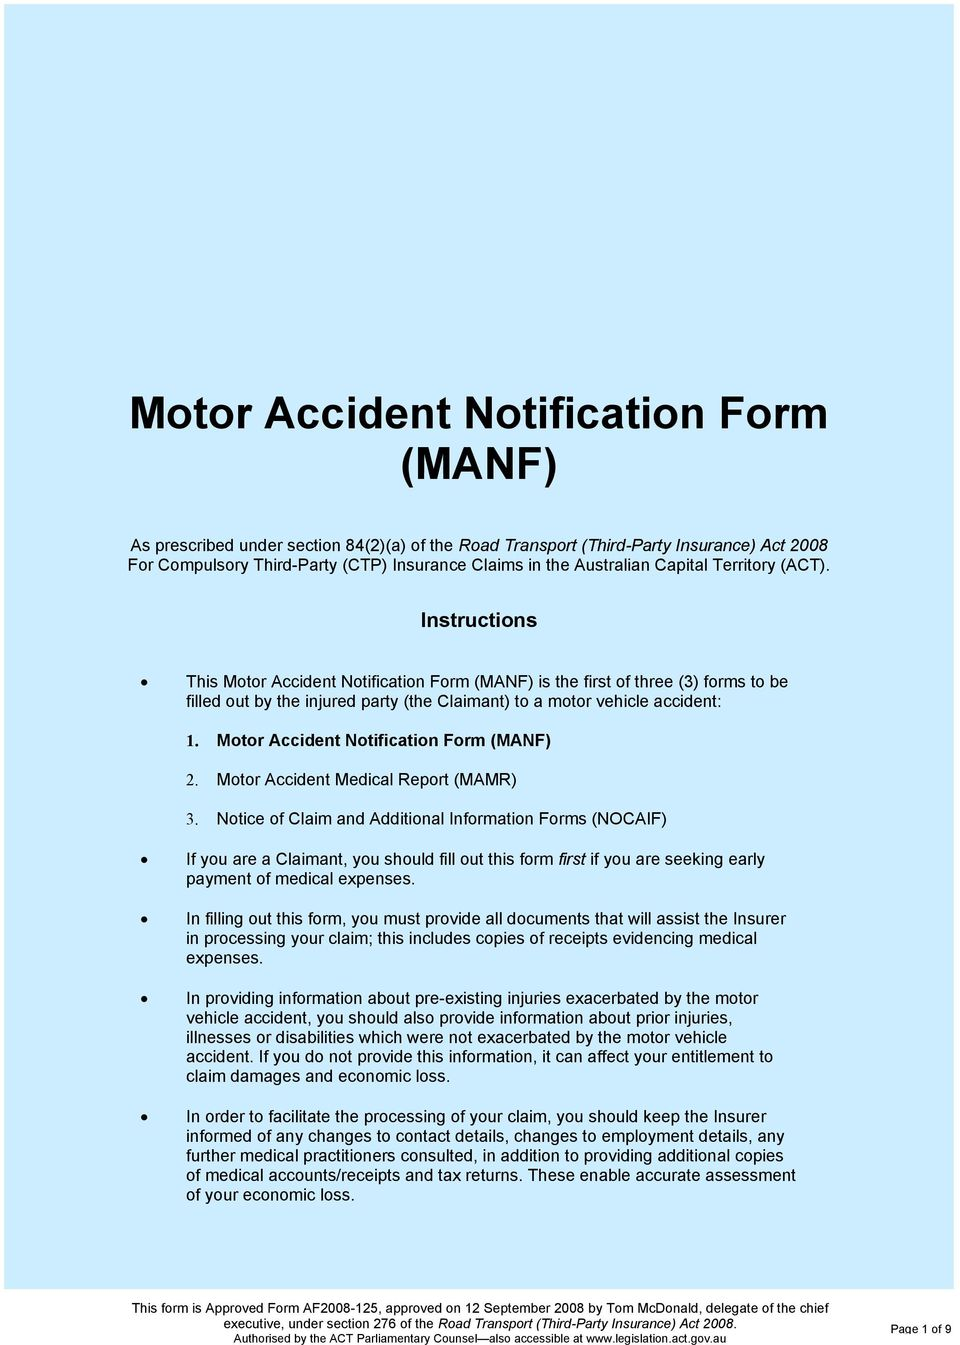 Motor Accident tification Form (MANF) 2. Motor Accident Medical Report (MAMR) 3.